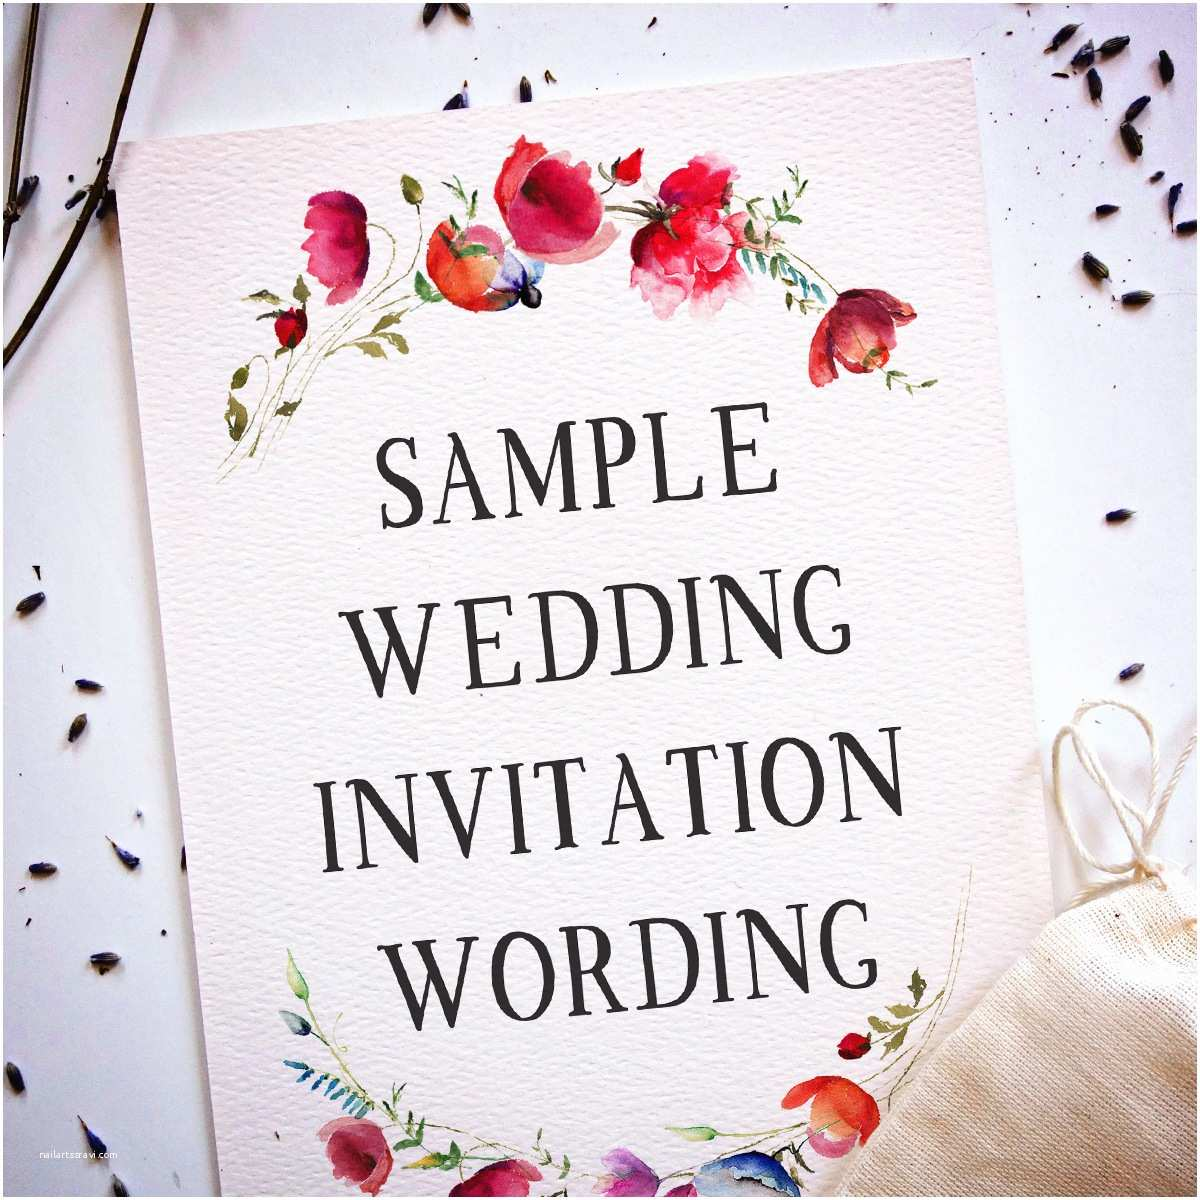 What to Write On Wedding Invitations Wedding Invitation Wording Samples From Traditional to